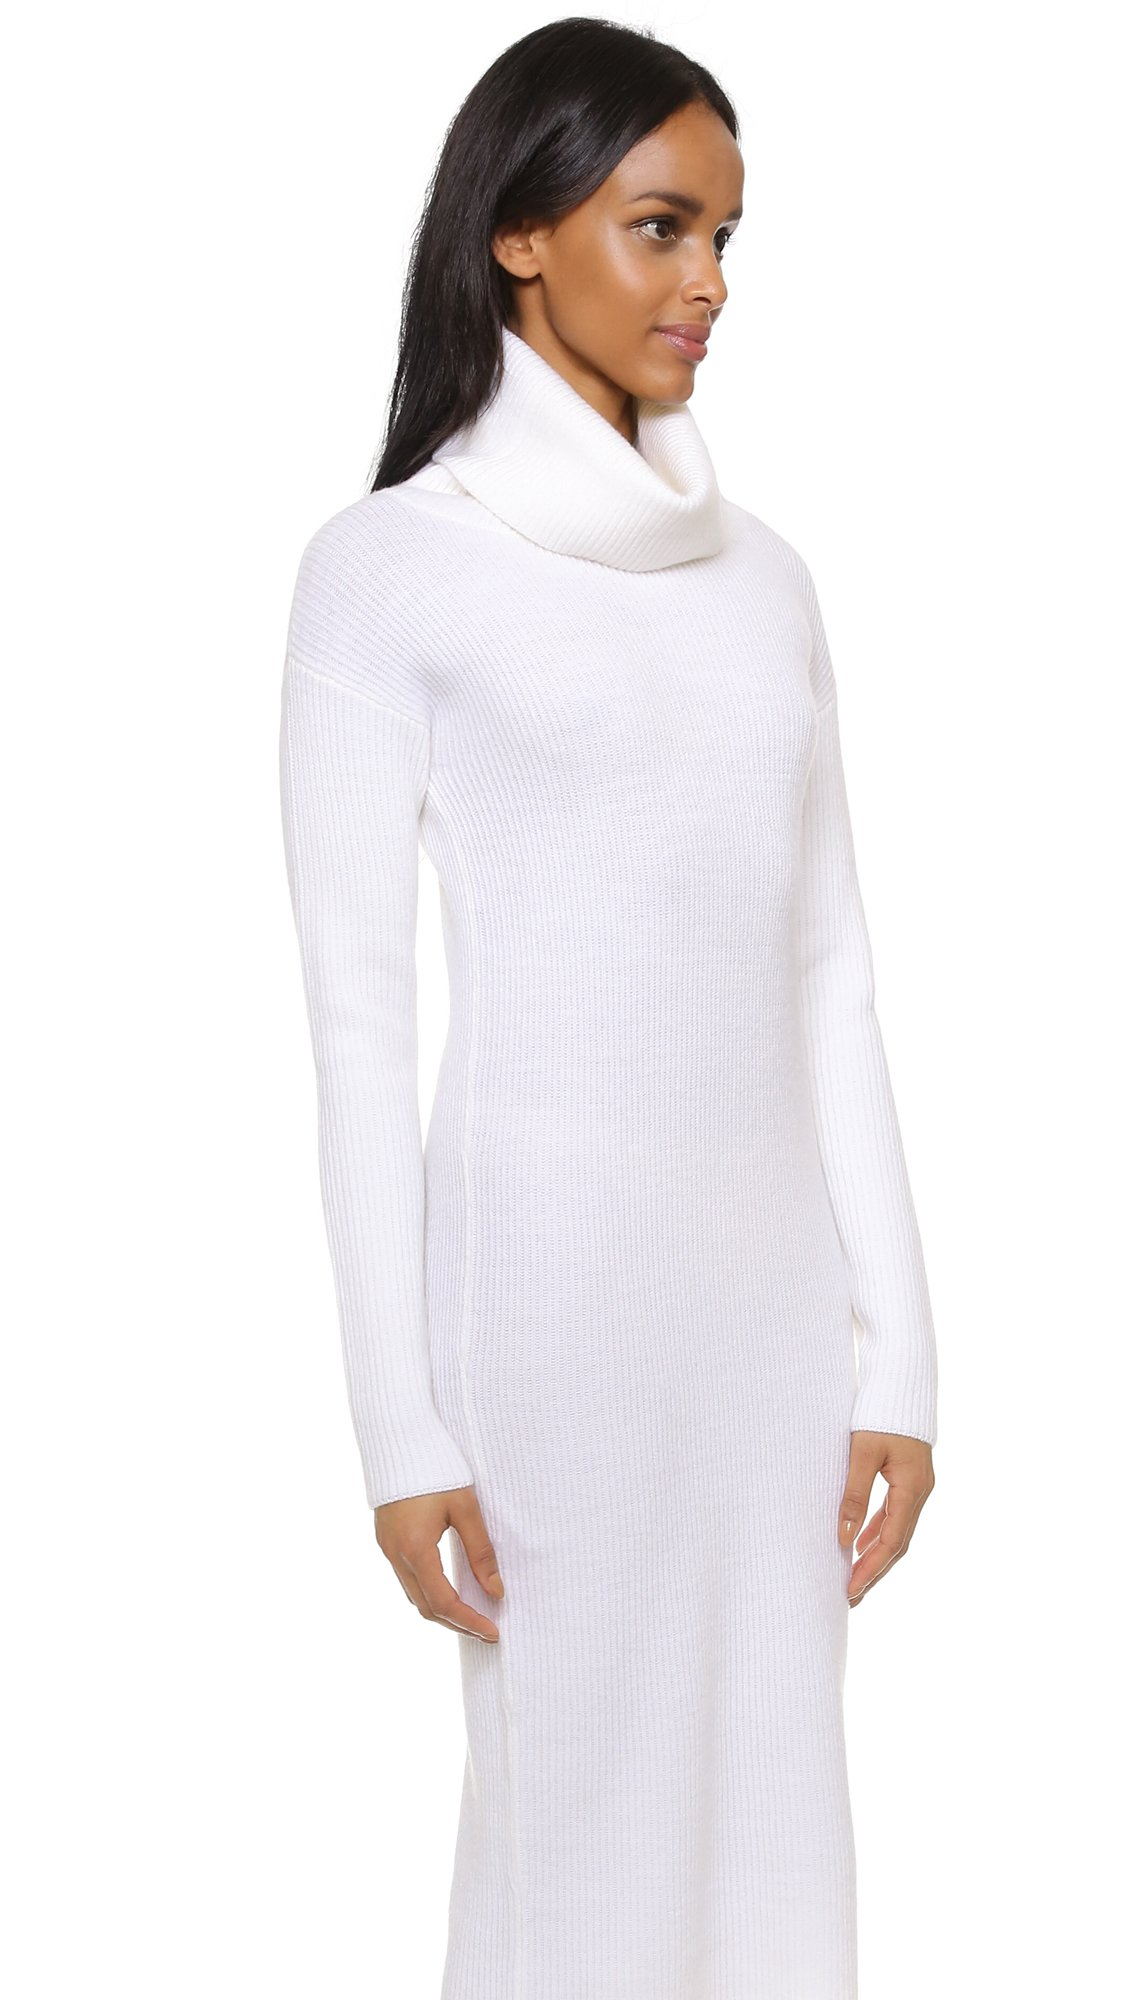 a45ab3f979d Lyst - Dkny Long Sleeve Turtleneck Dress in White